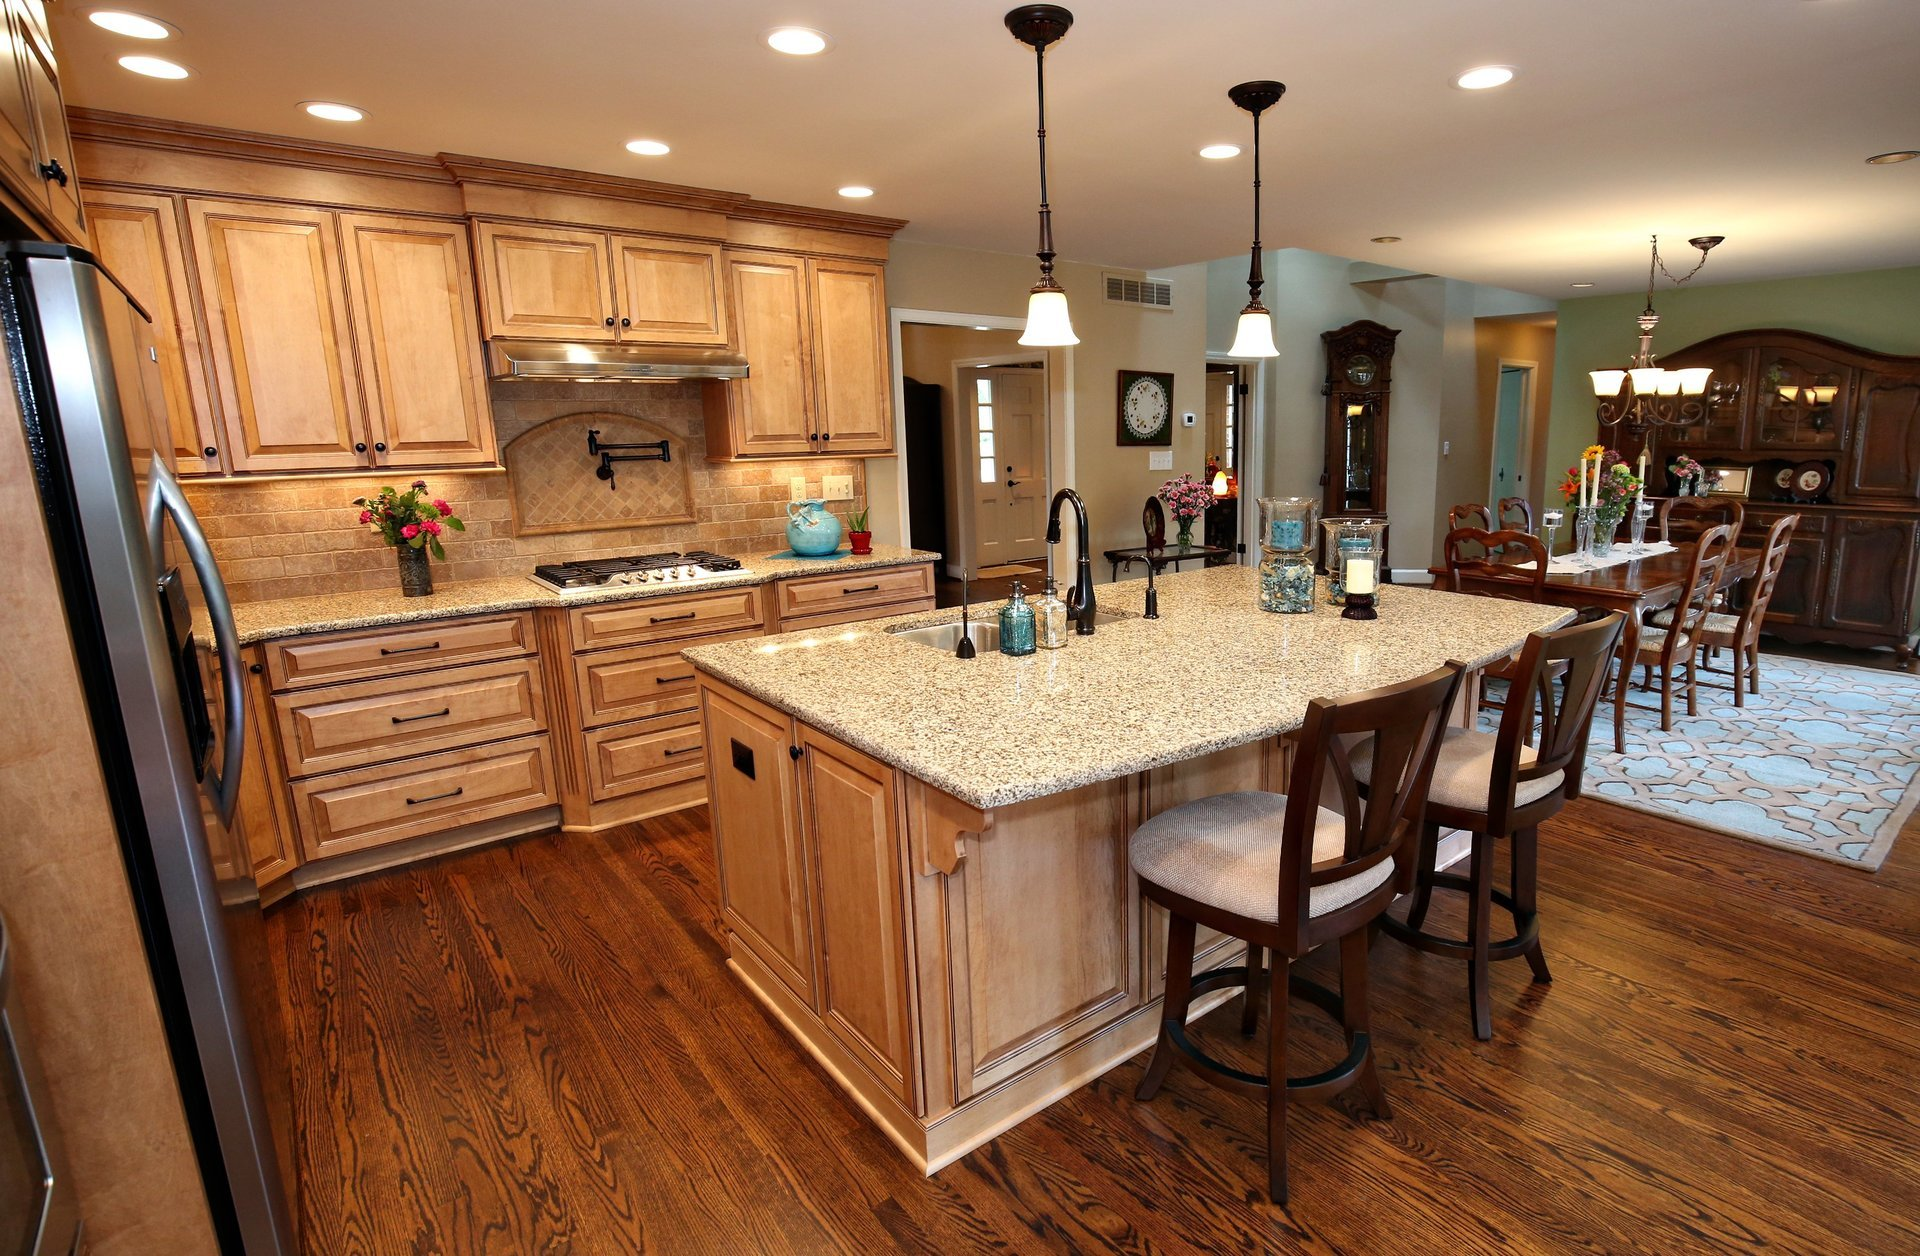 Complete Home Remodel in Louisville KY